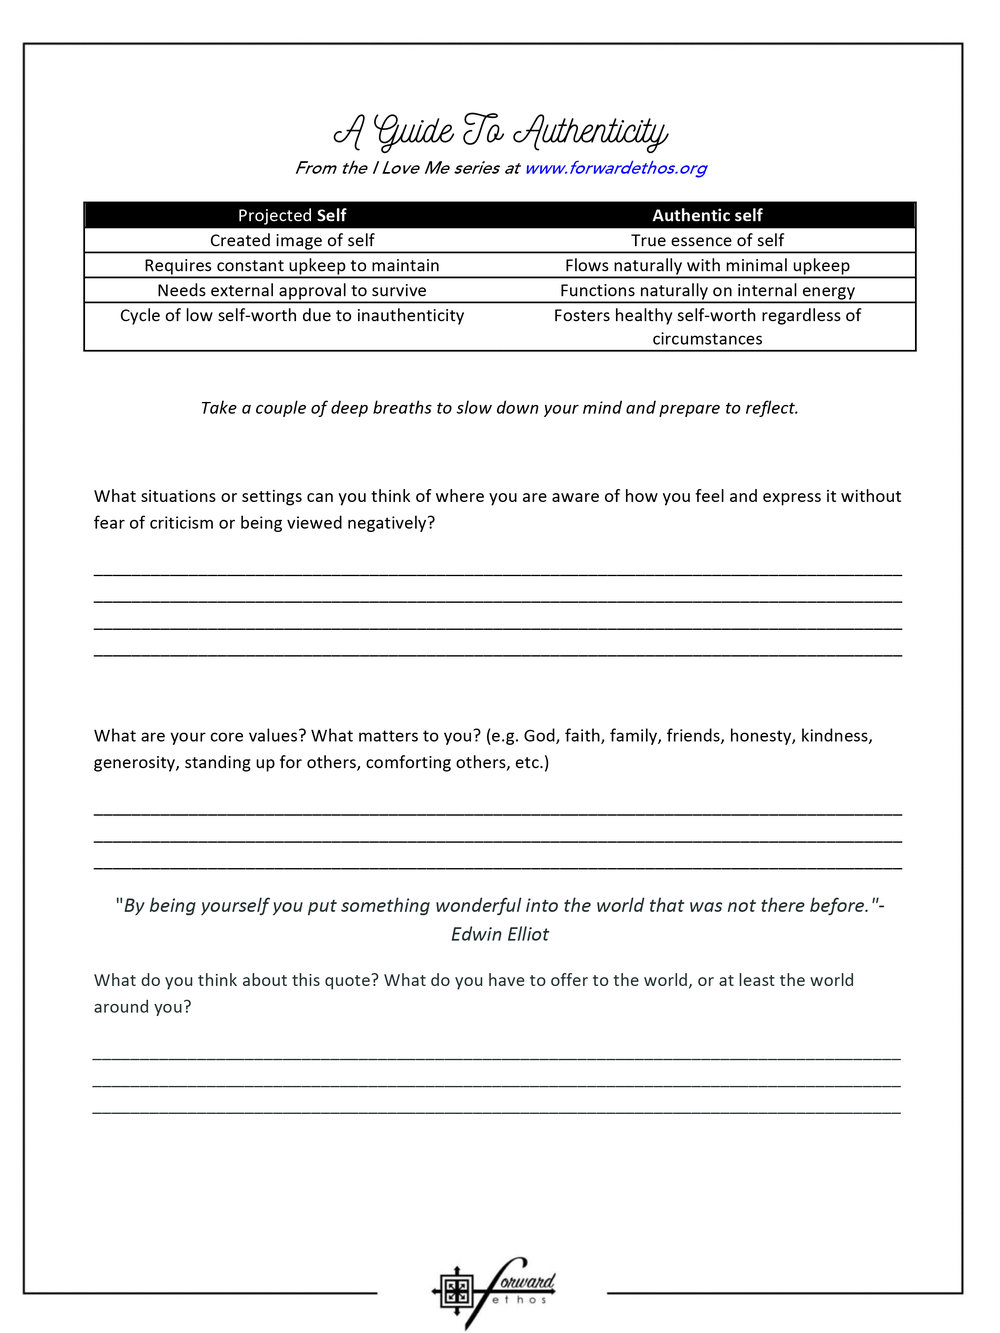 All Worksheets — Forward Ethos